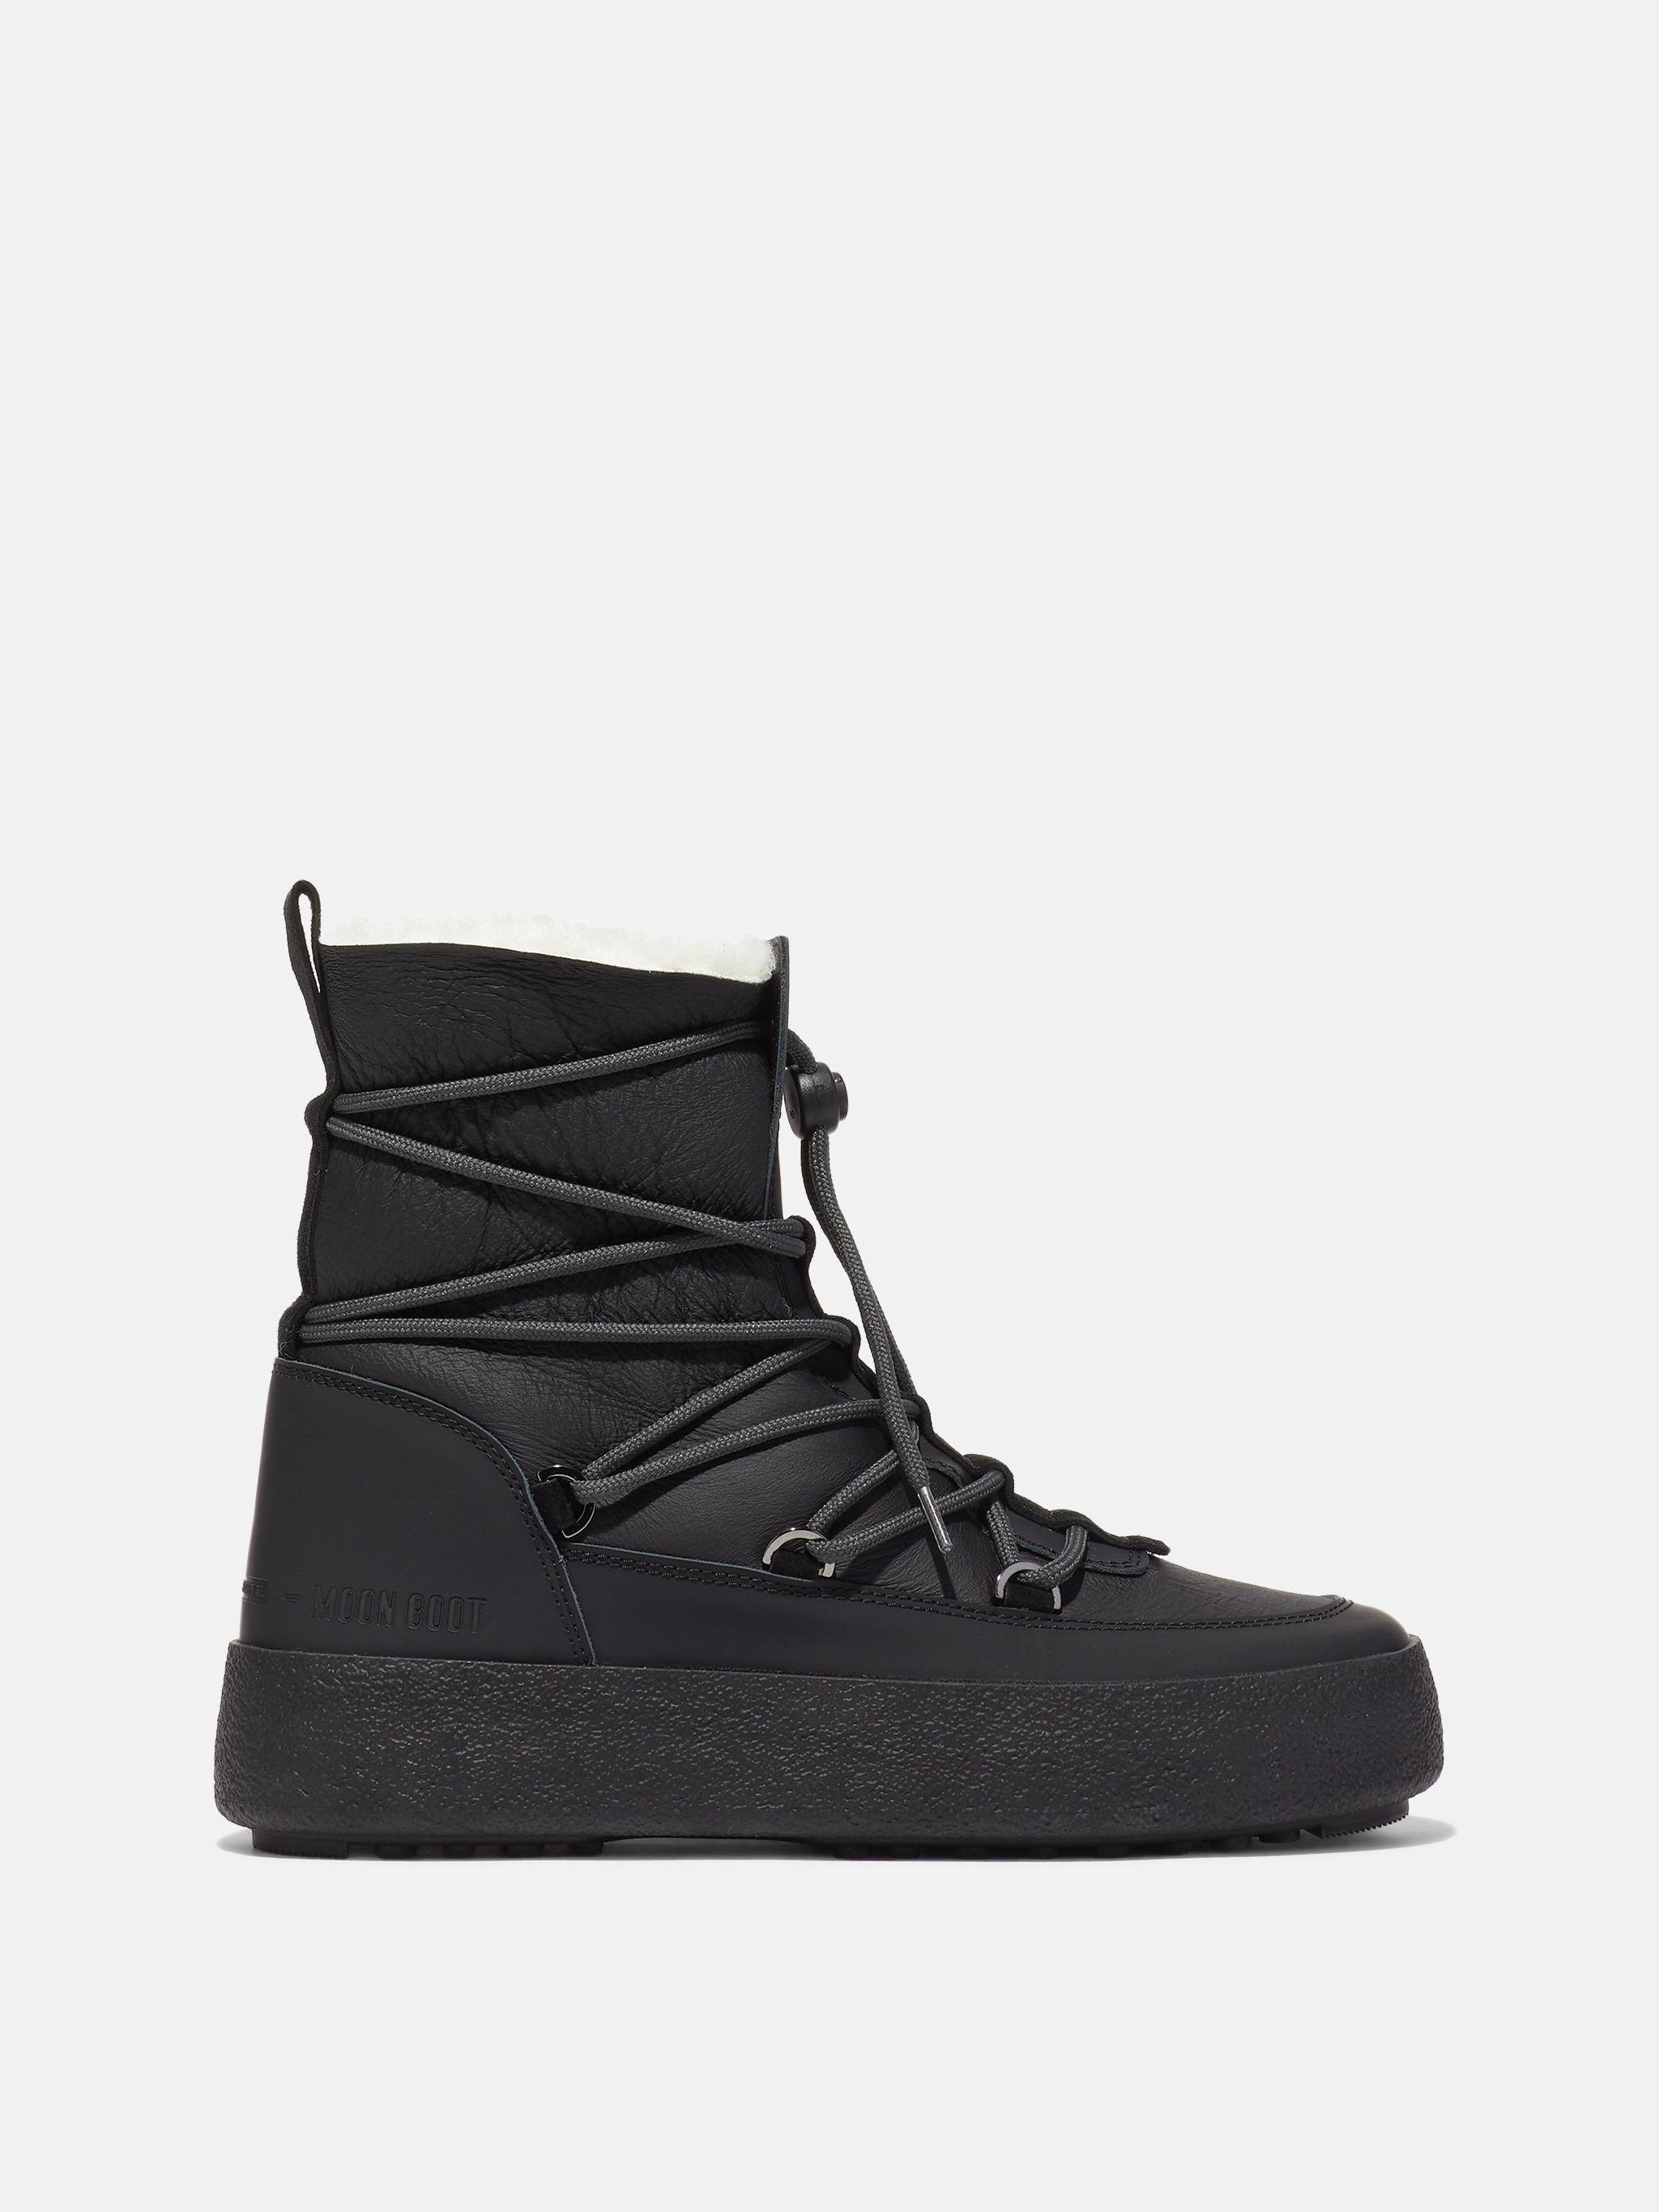 MTRACK BLACK SHEARLING BOOTS